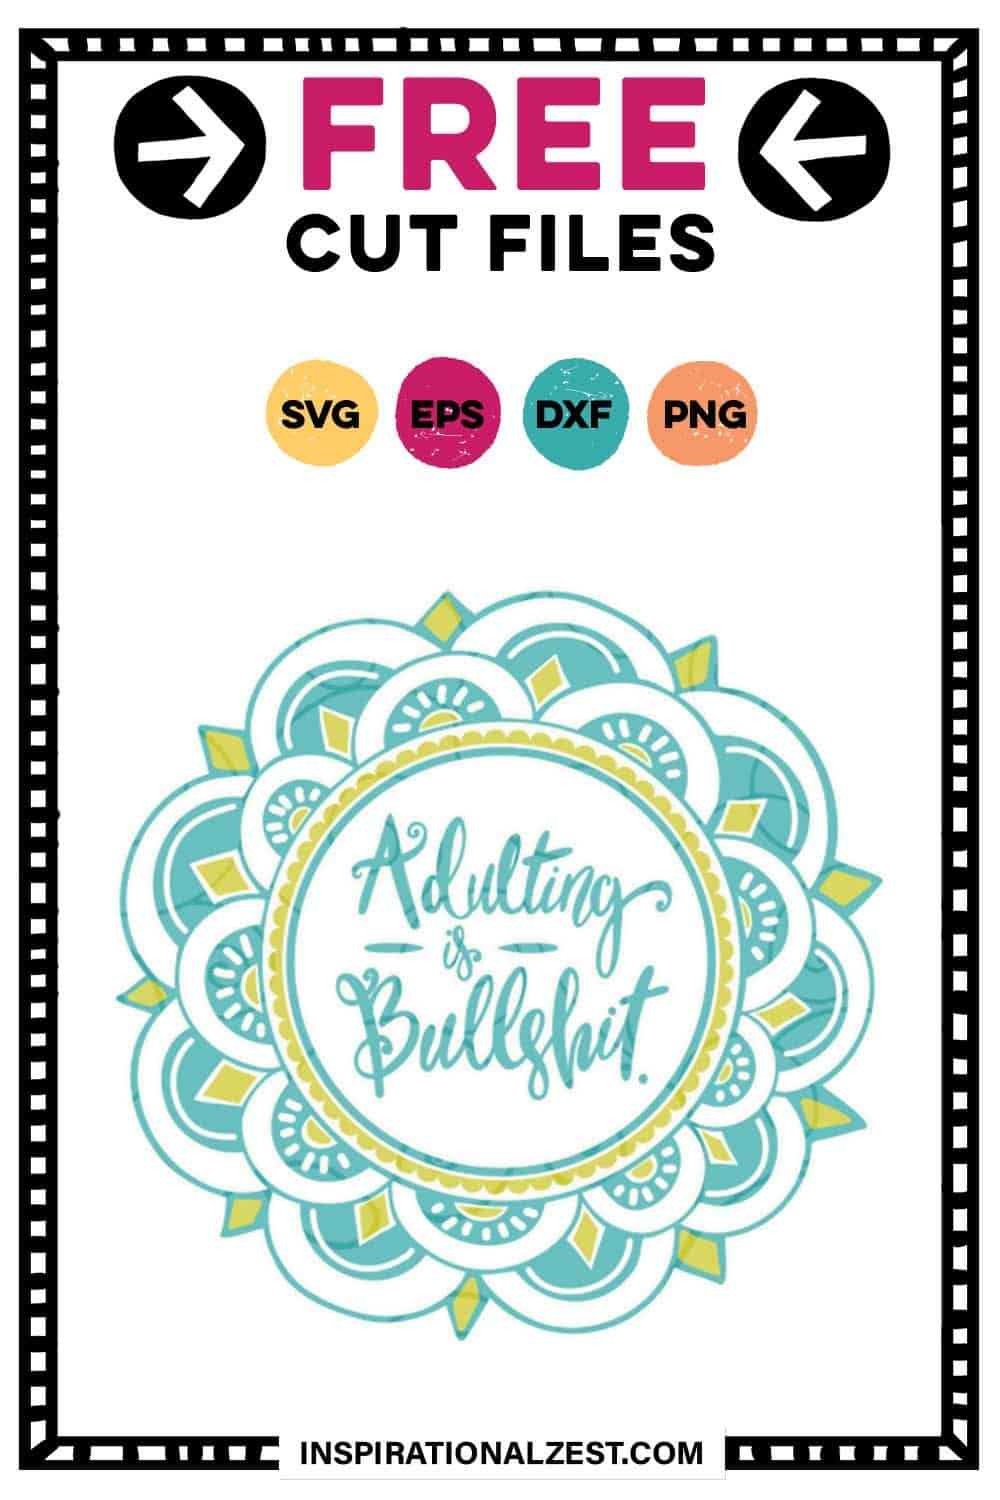 Adulting is Bullshit! | FUNNY SVG Cut file for Millennials